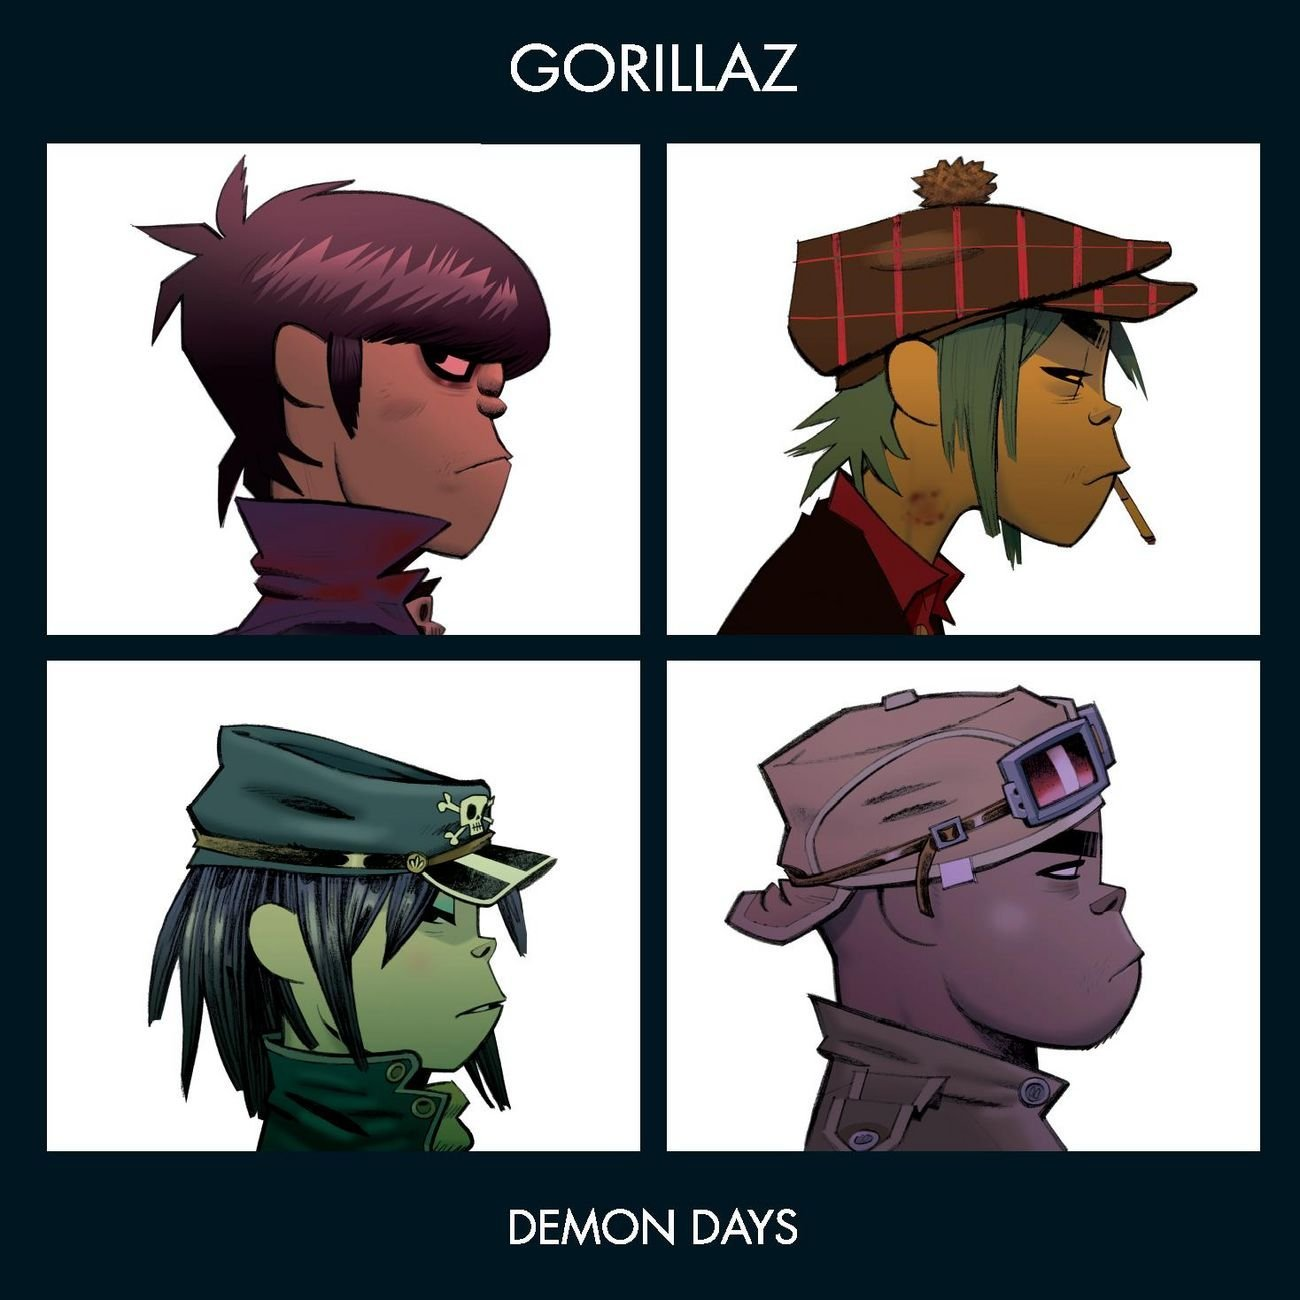 「November Has Come」収録アルバム『Demon Days』/Gorillaz